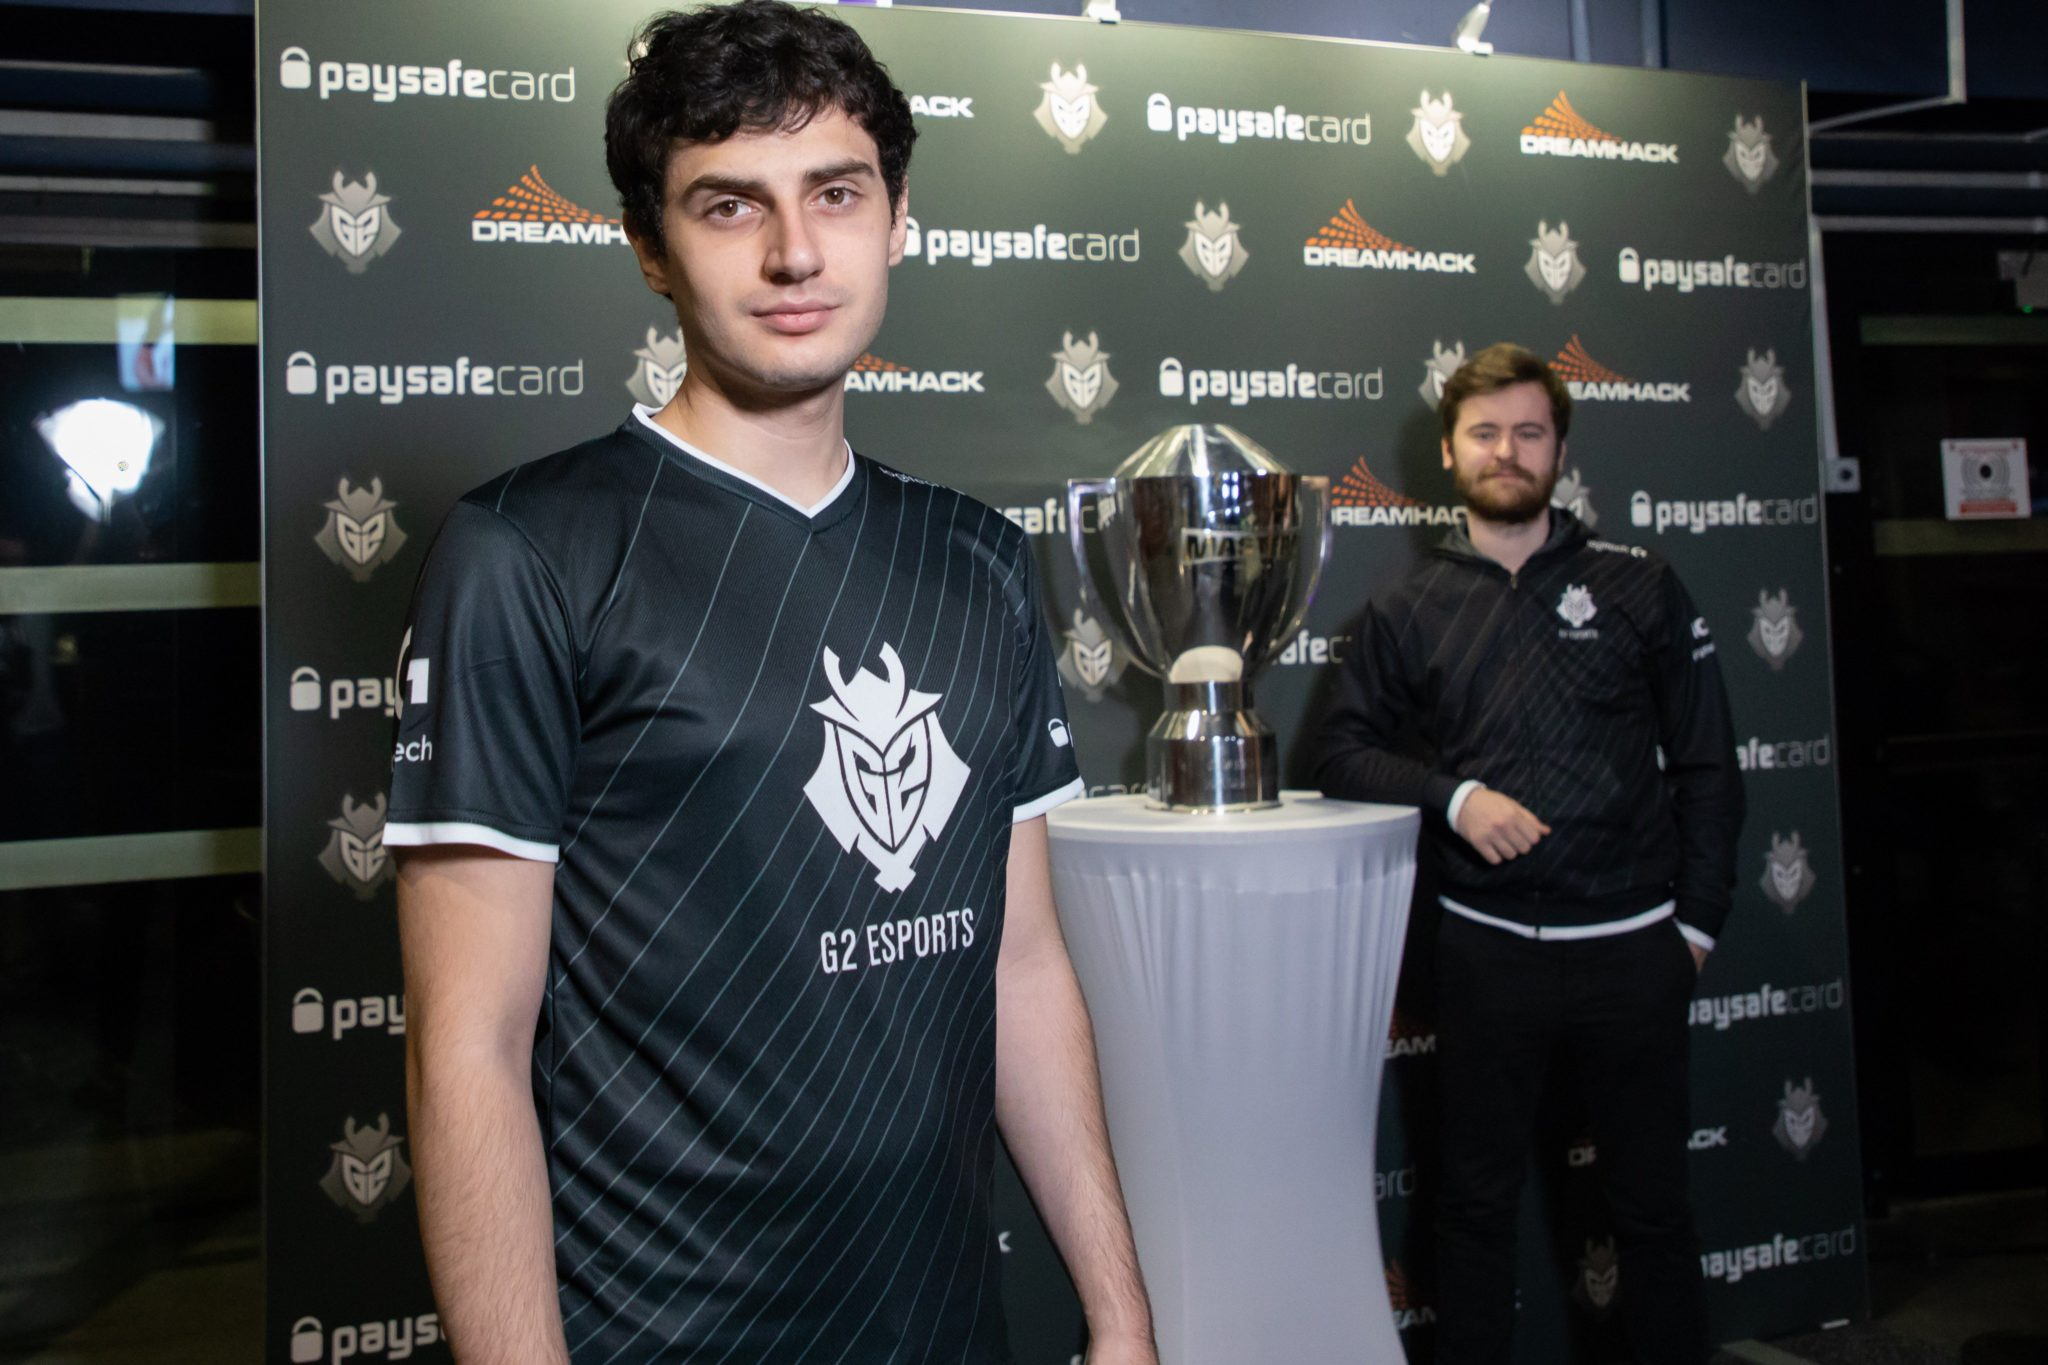 Mixwell with NBK for G2 Esports.